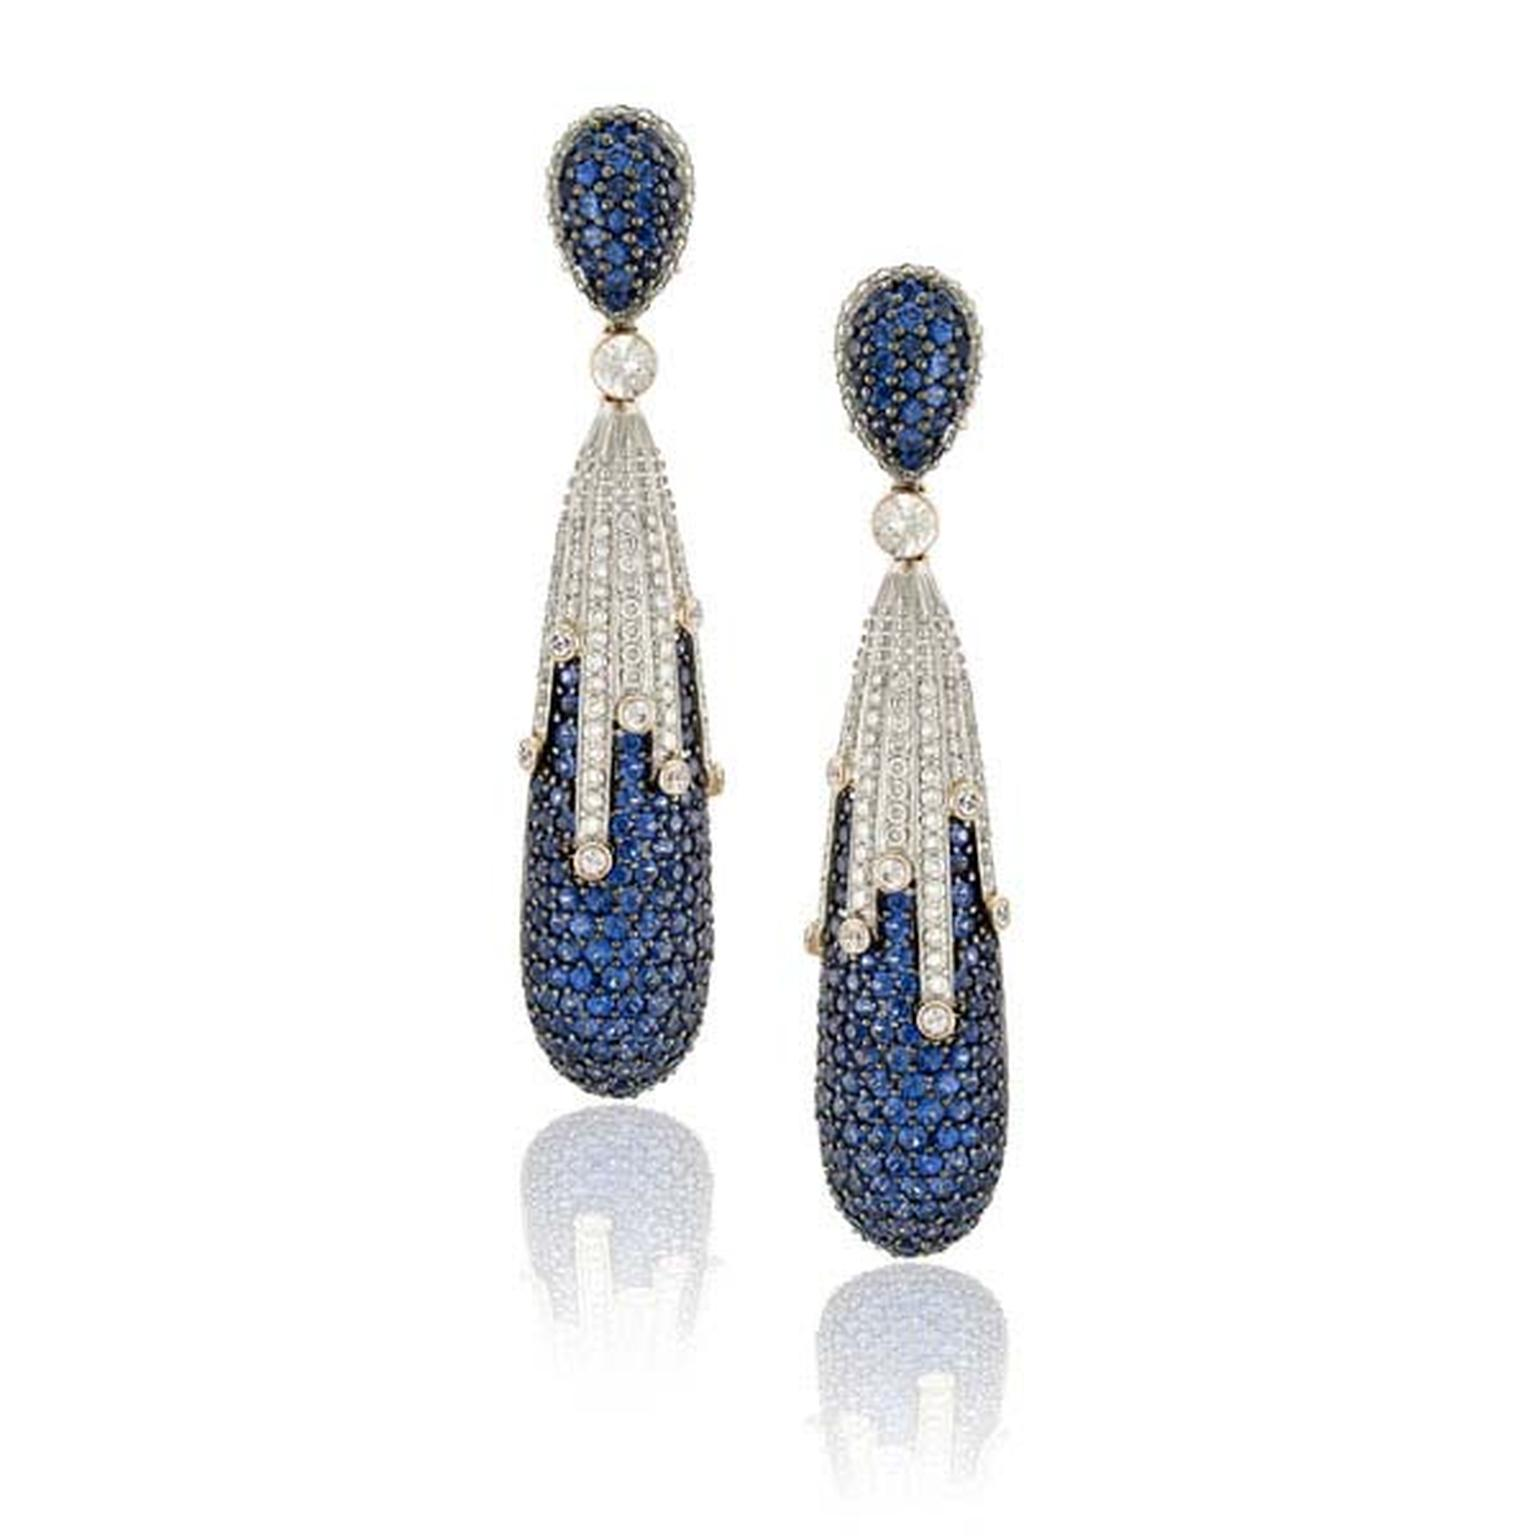 Zorab de Atelier Blue Cascade Drop earrings in gold and palladium with blue sapphires and white diamonds.